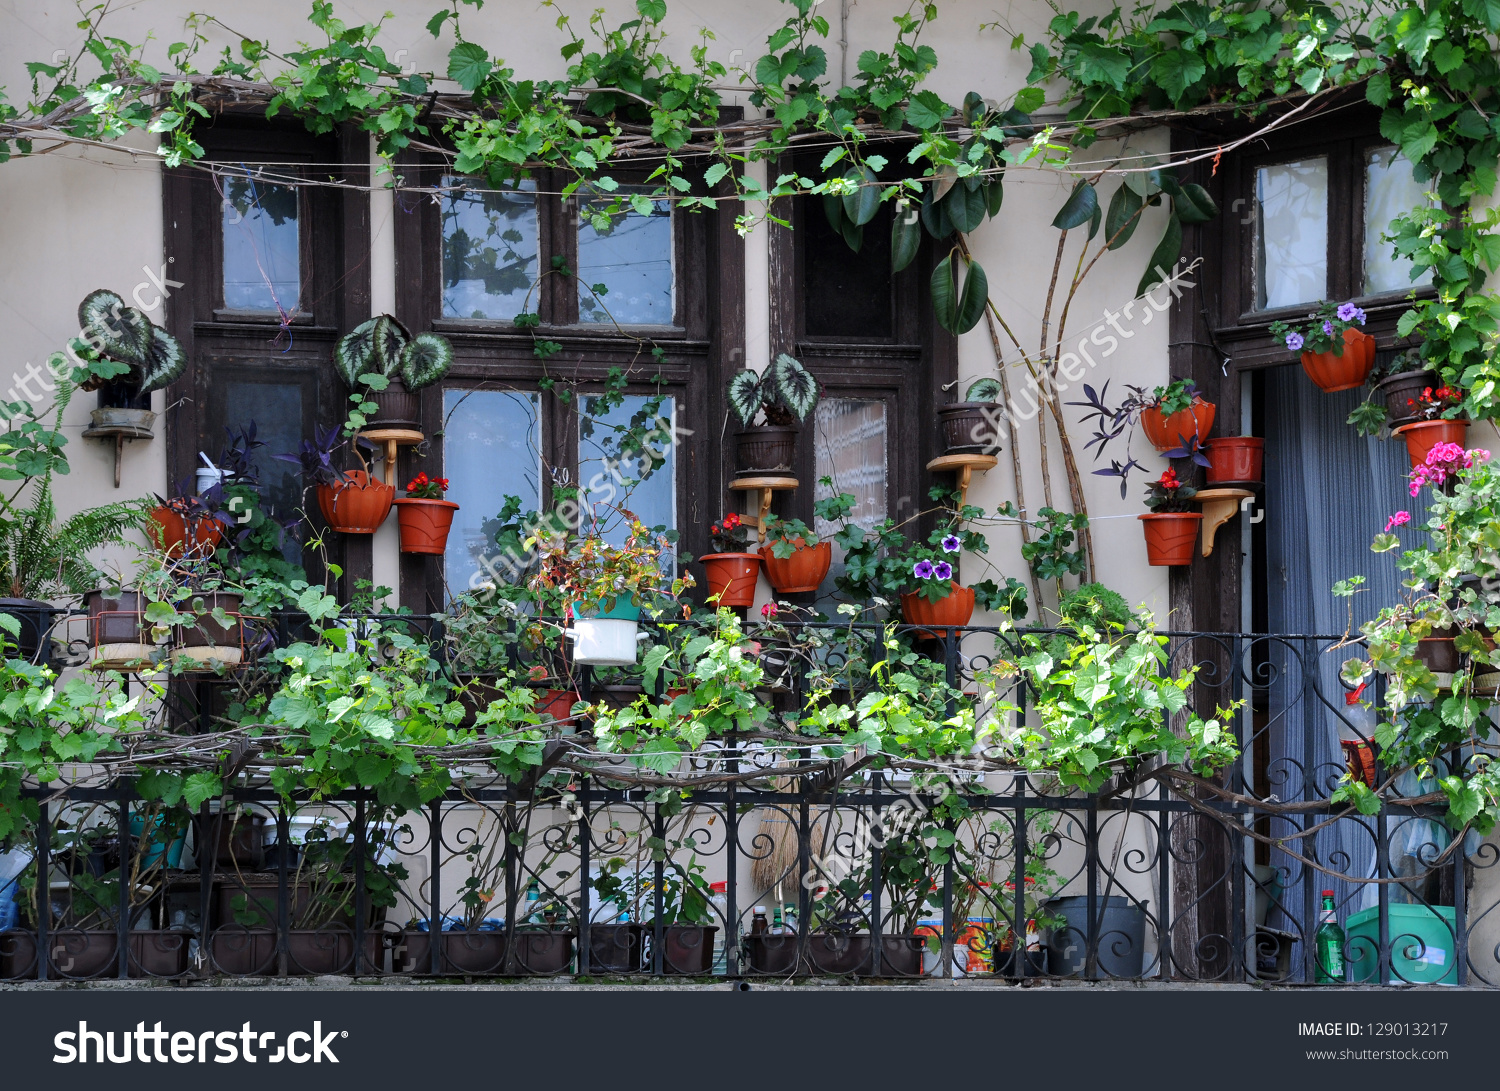 Flowerpots House Plants On Balcony Stock Photo 129013217.